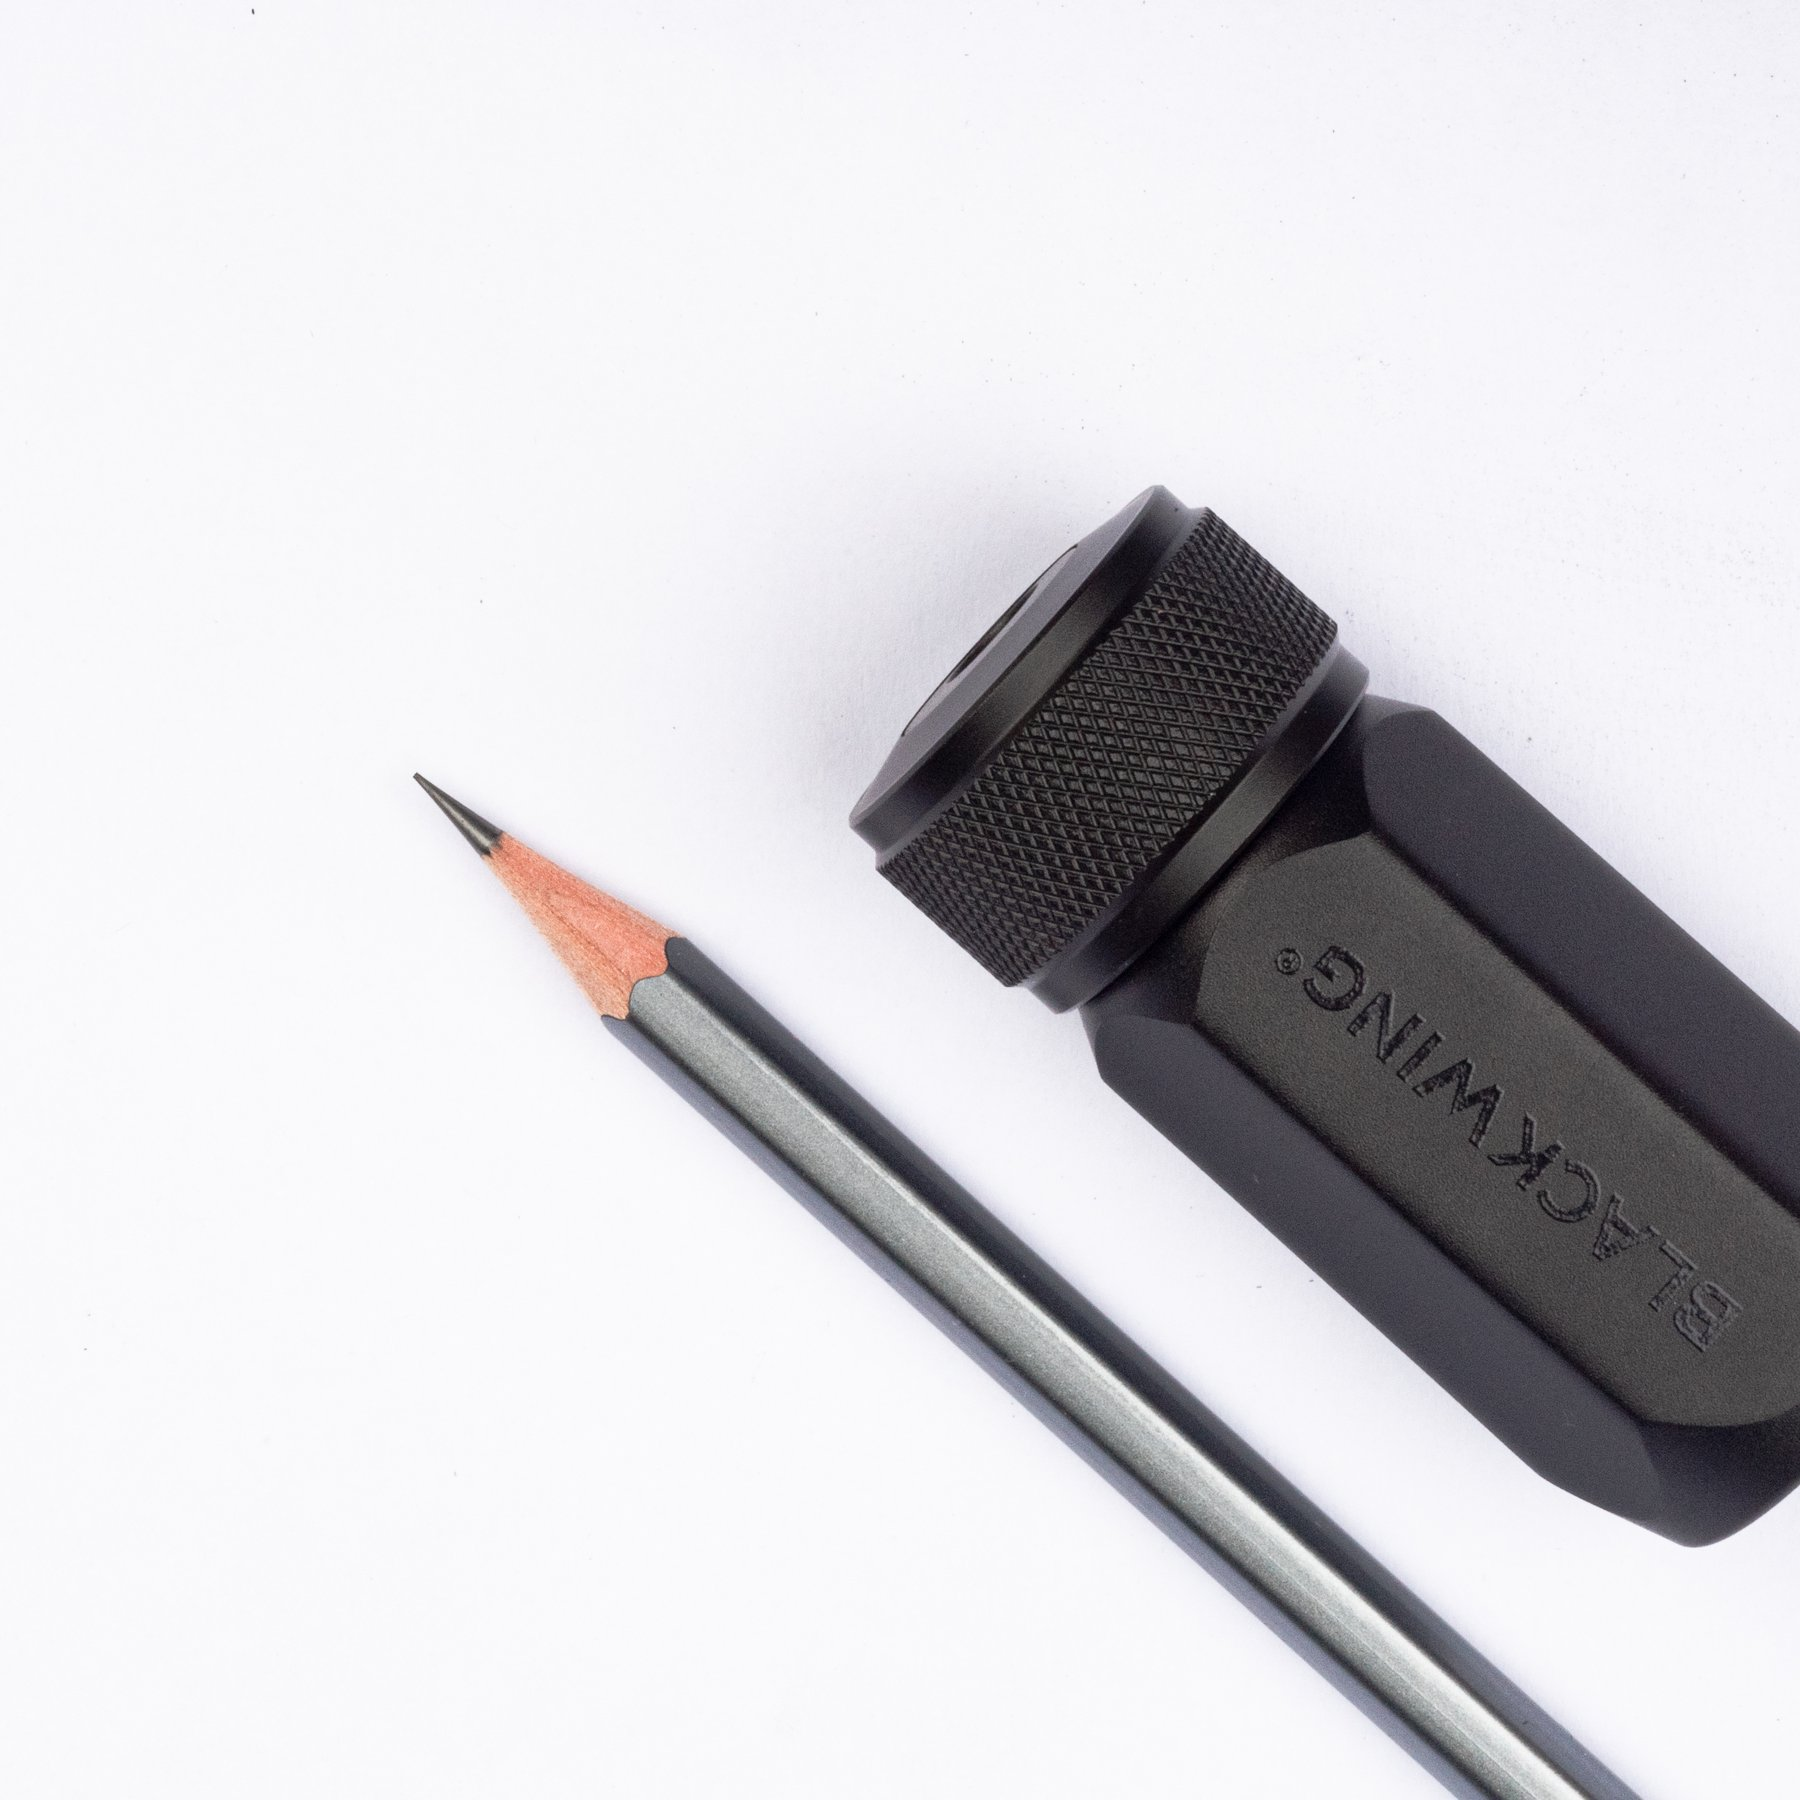 onestep sharpener2 - BLACKWING